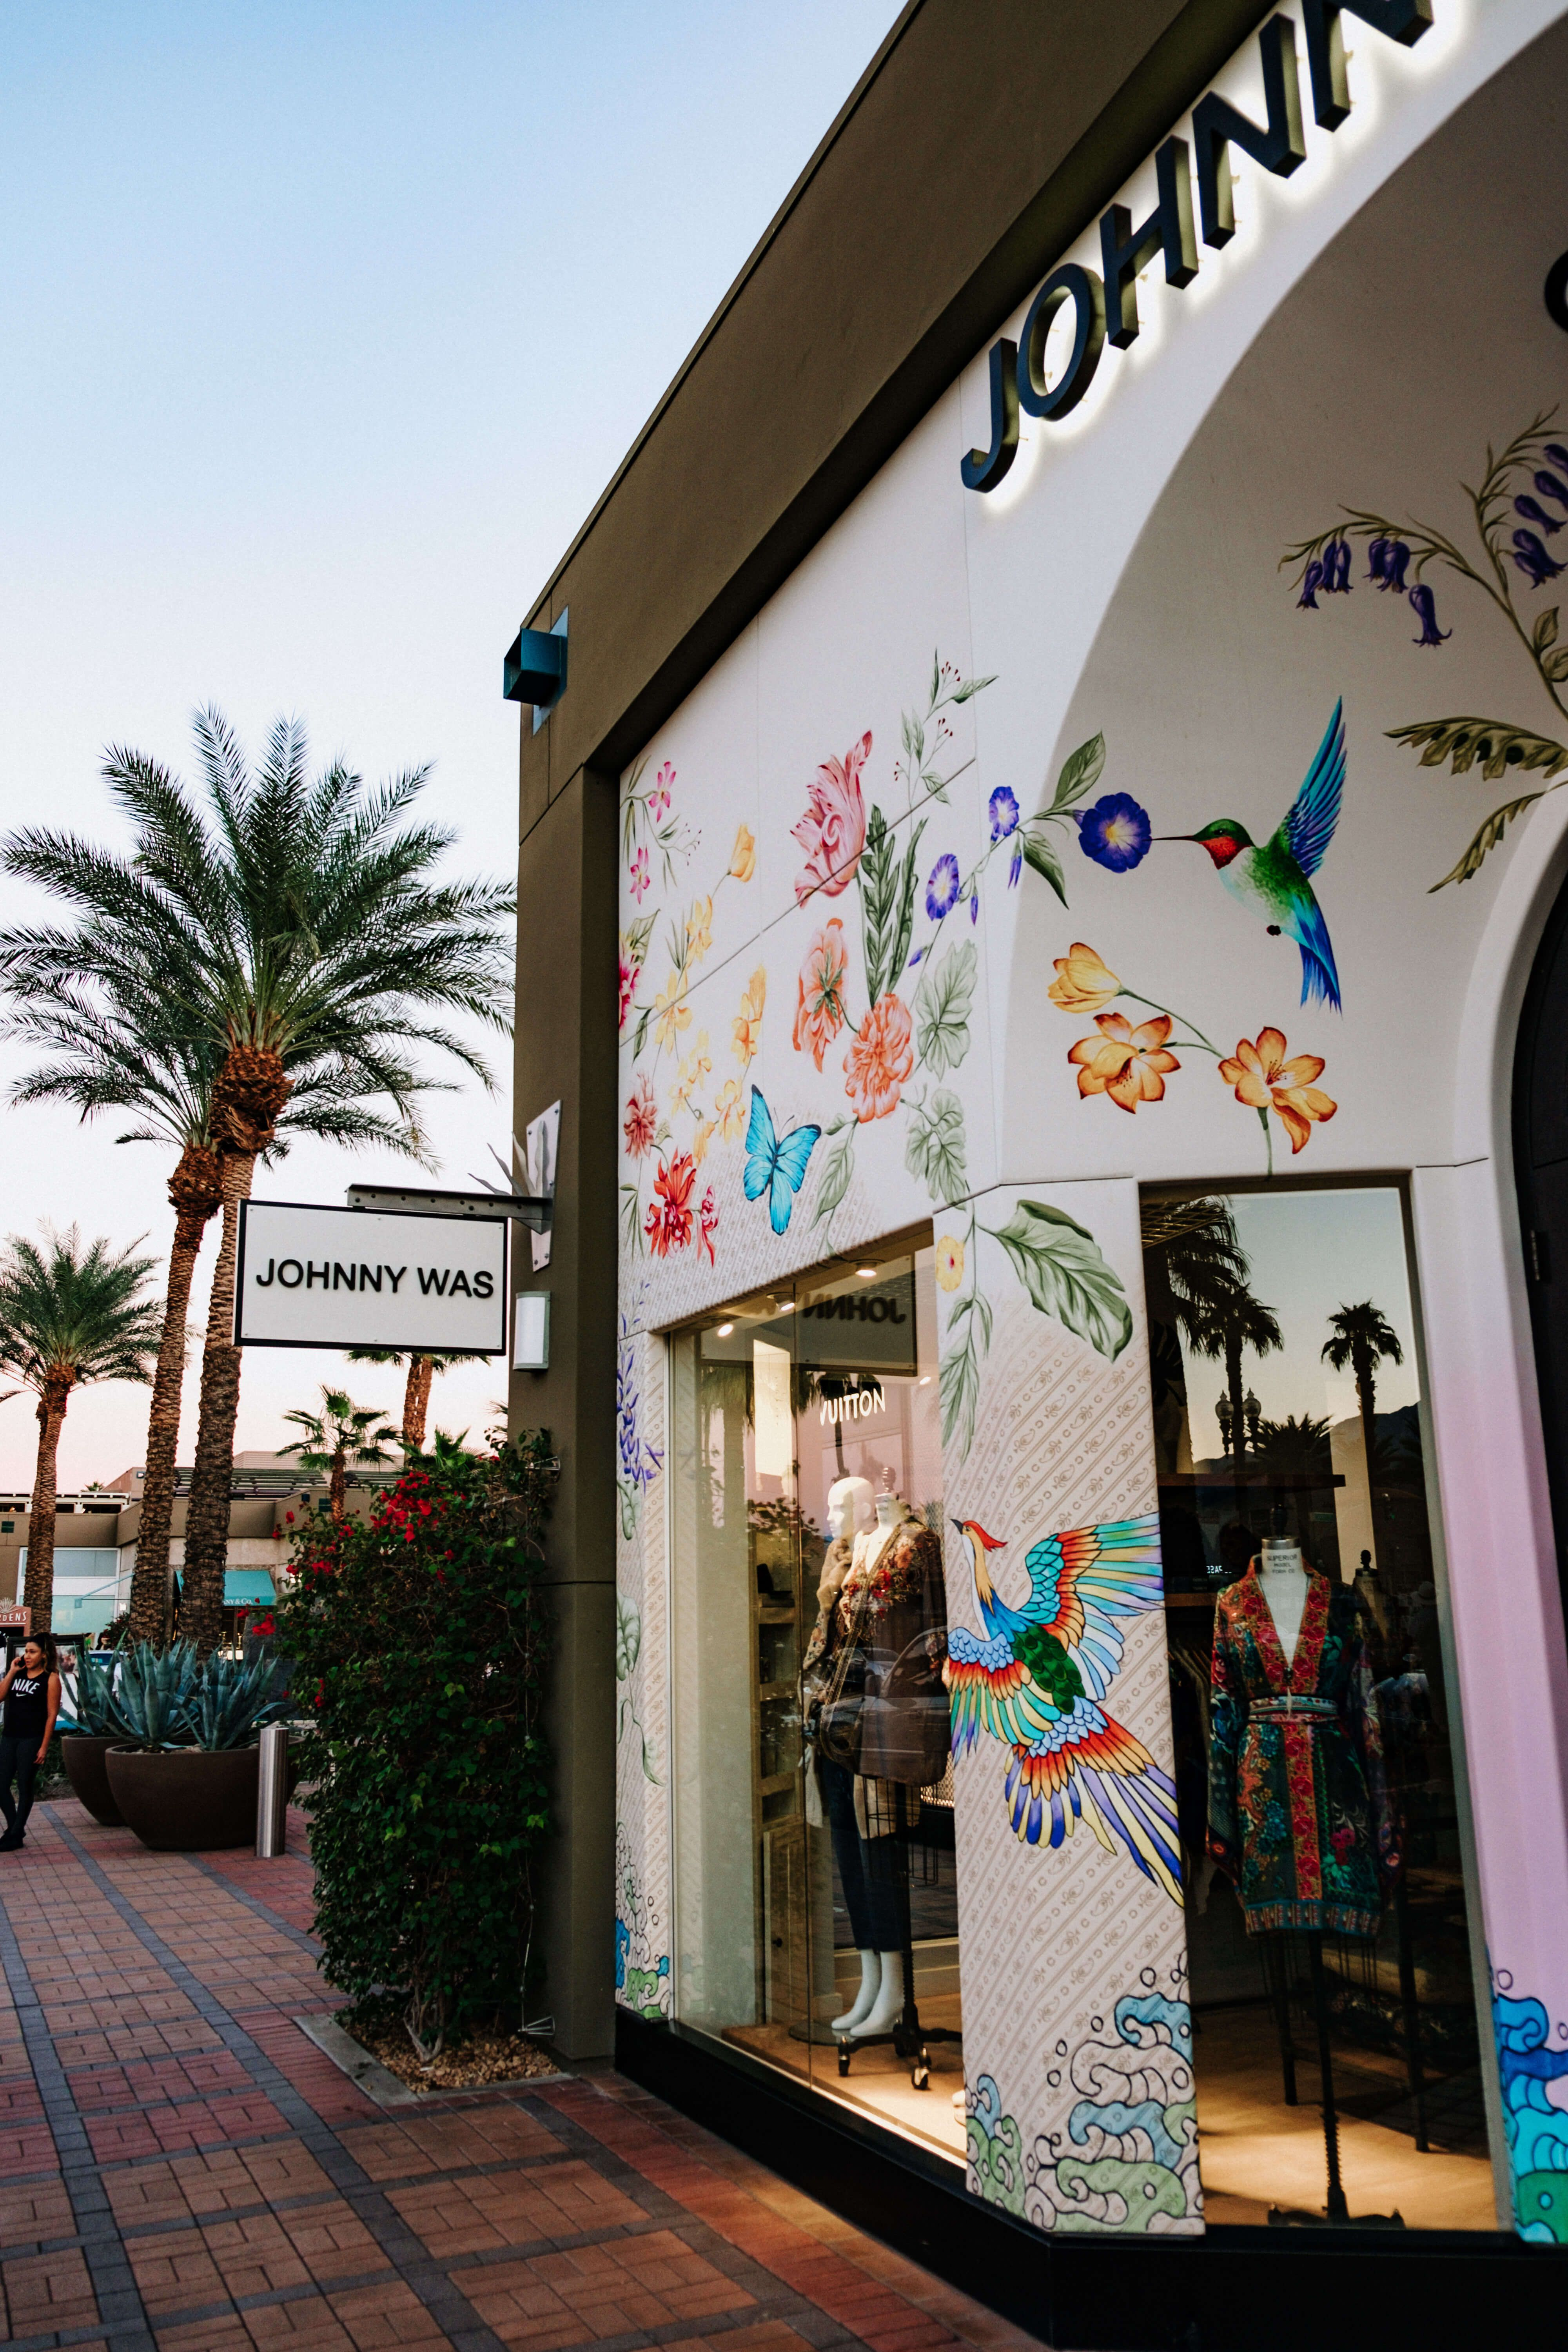 The Ultimate Guide To Shopping On El Paseo In Palm Desert Palm